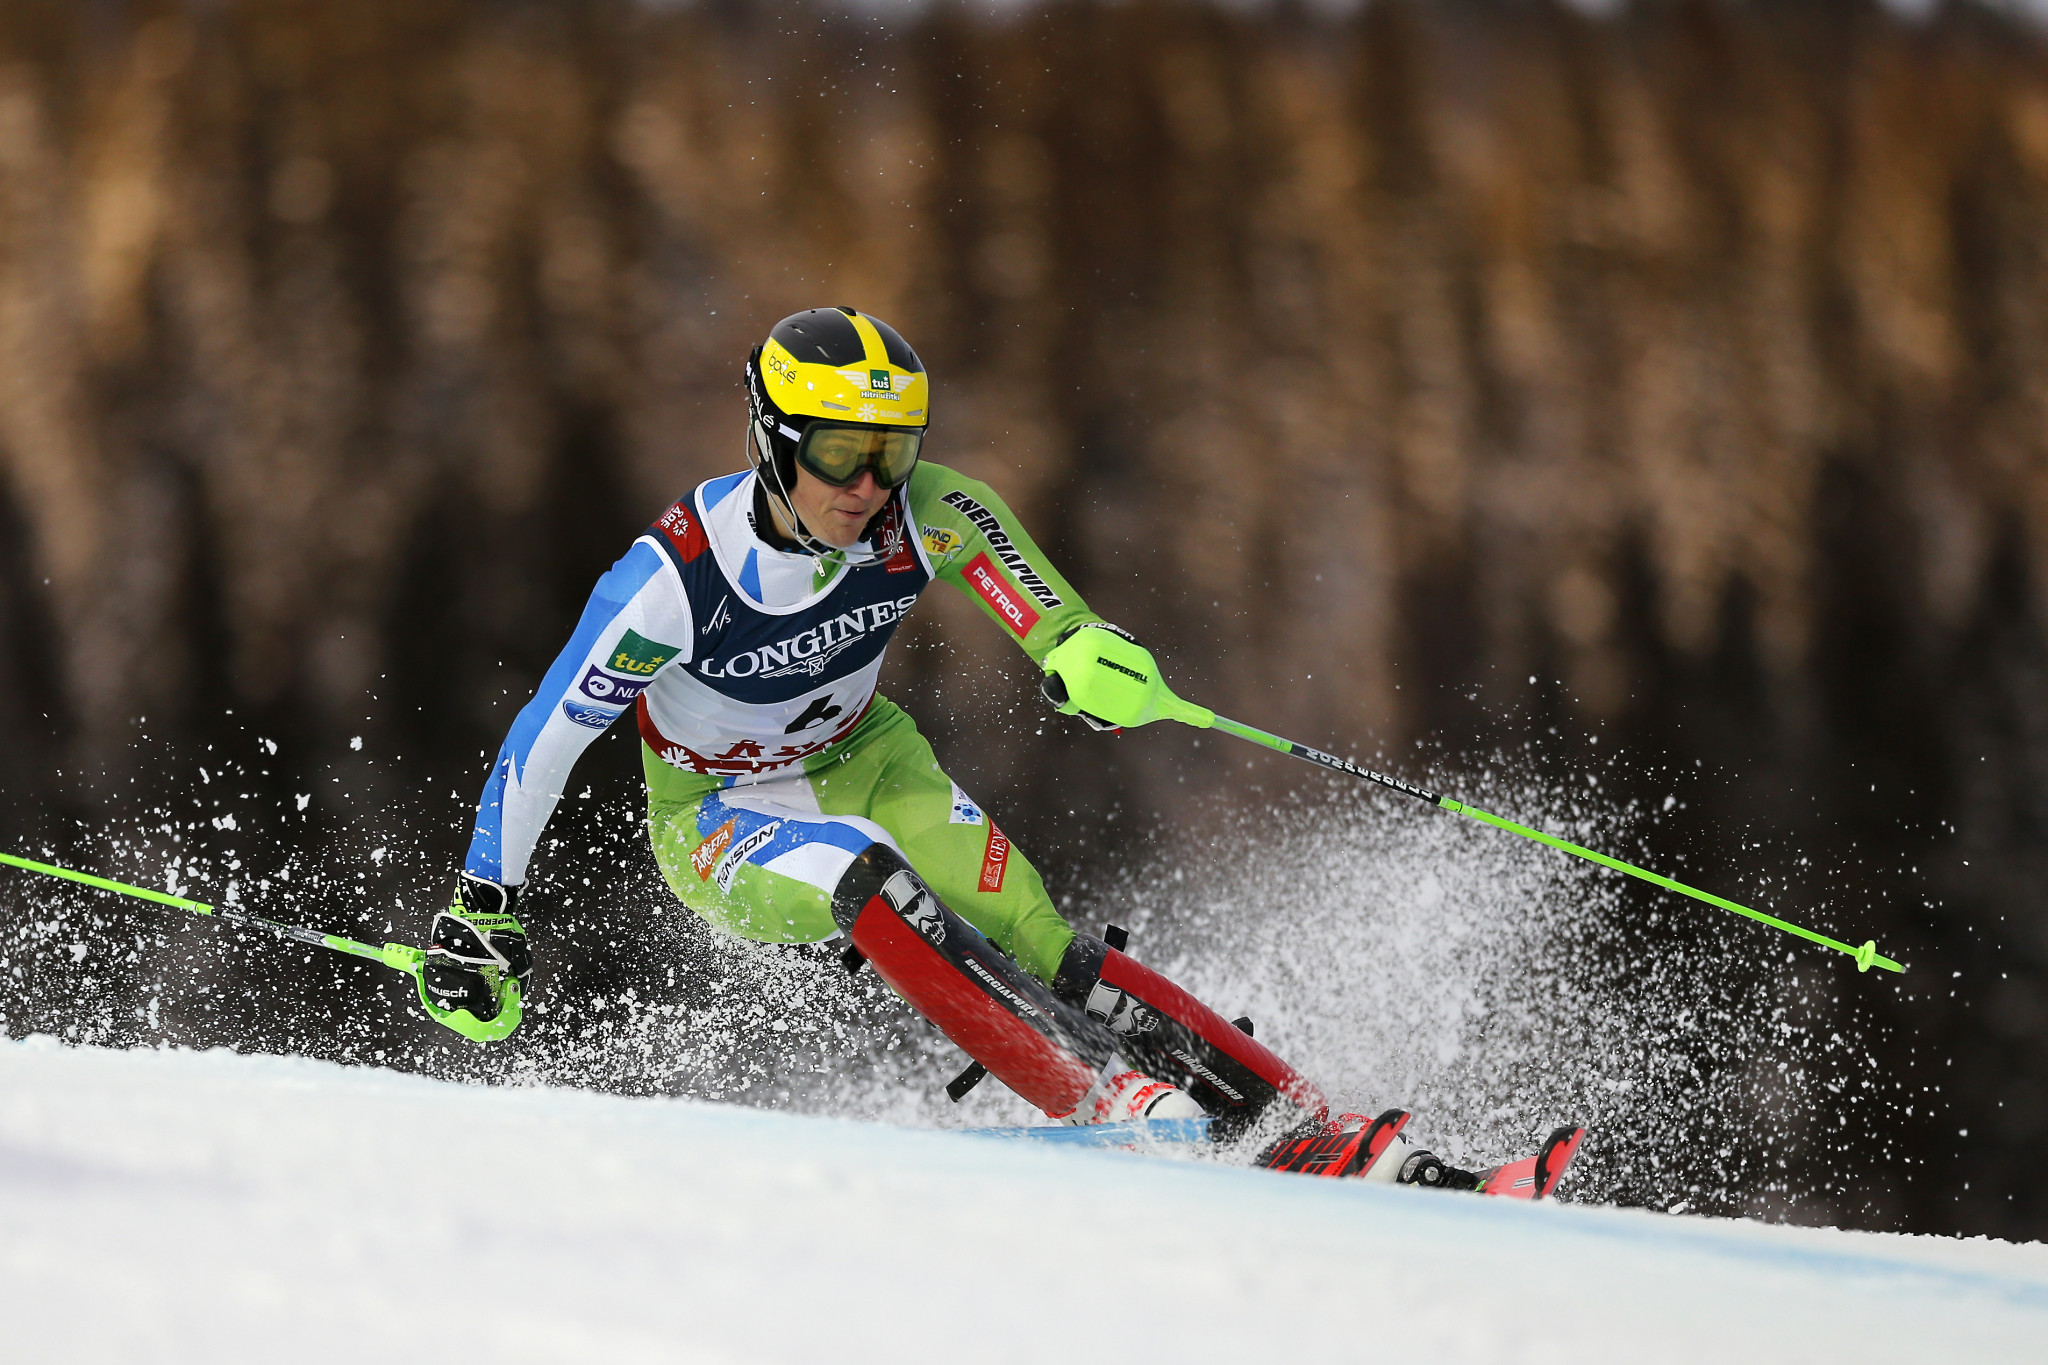 Slovenia's Stefan Hadalin finished as the silver medallist ©Getty Images